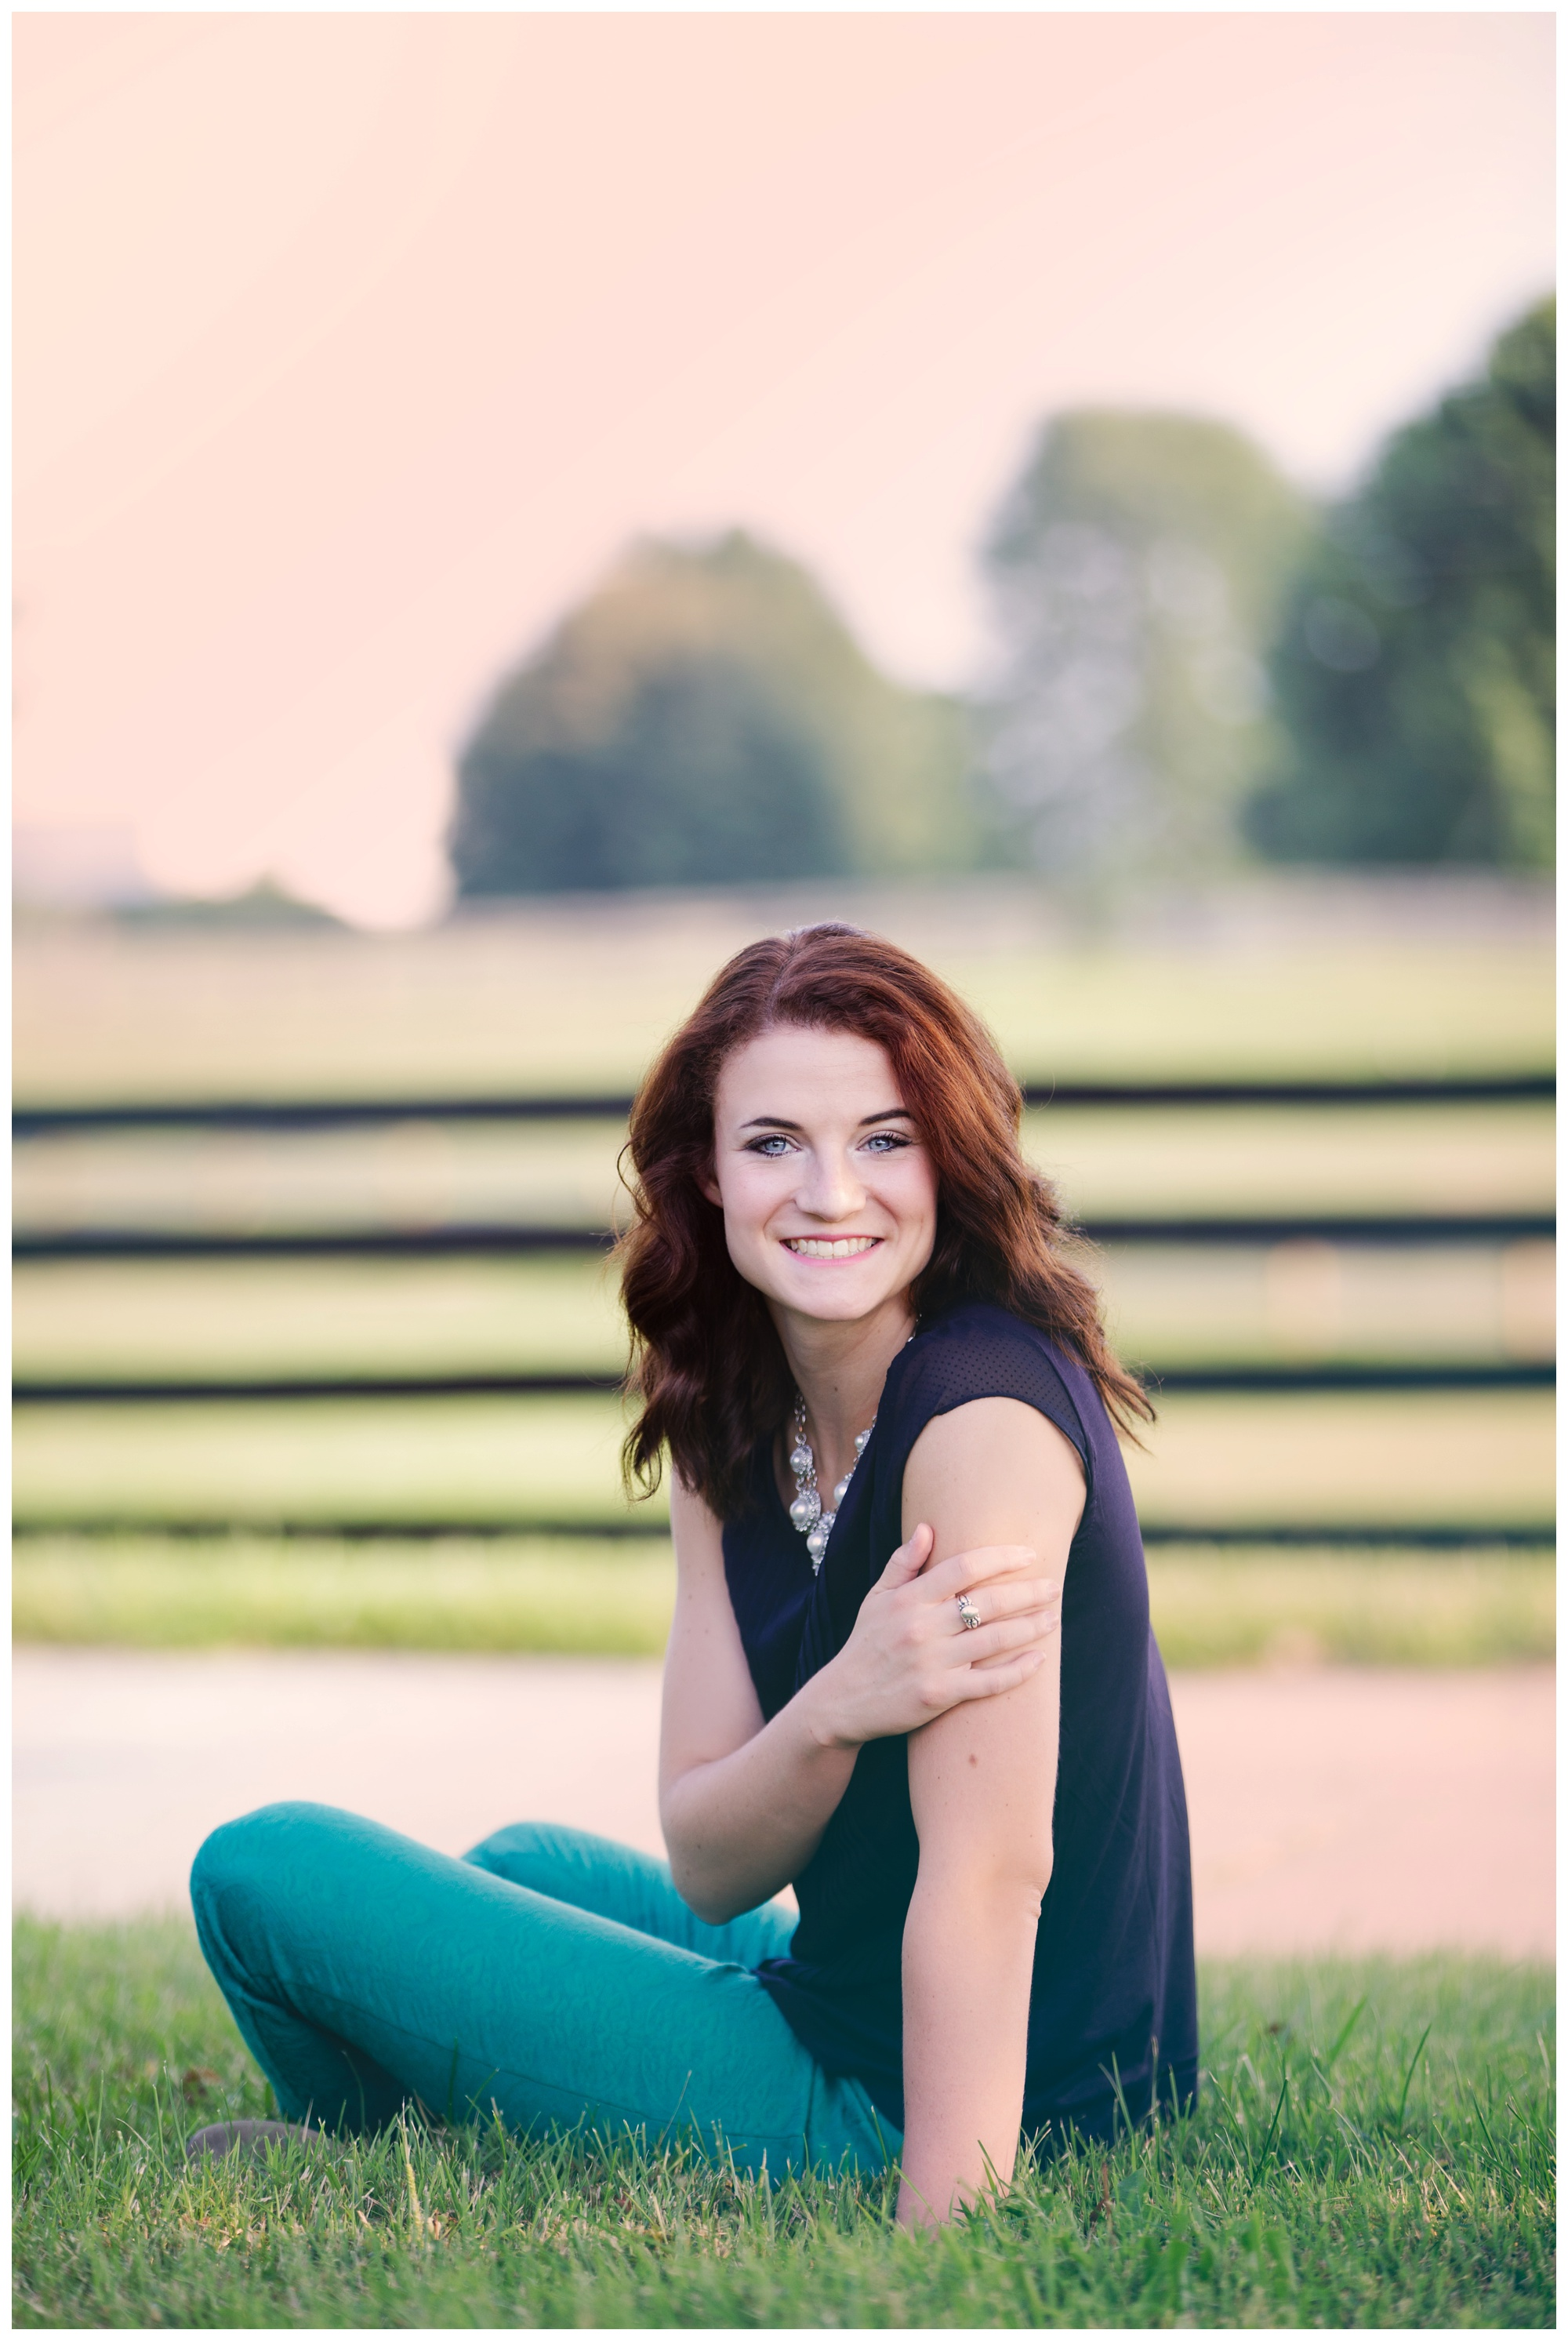 Louisville Senior Portraits Louisville Senior Photographer